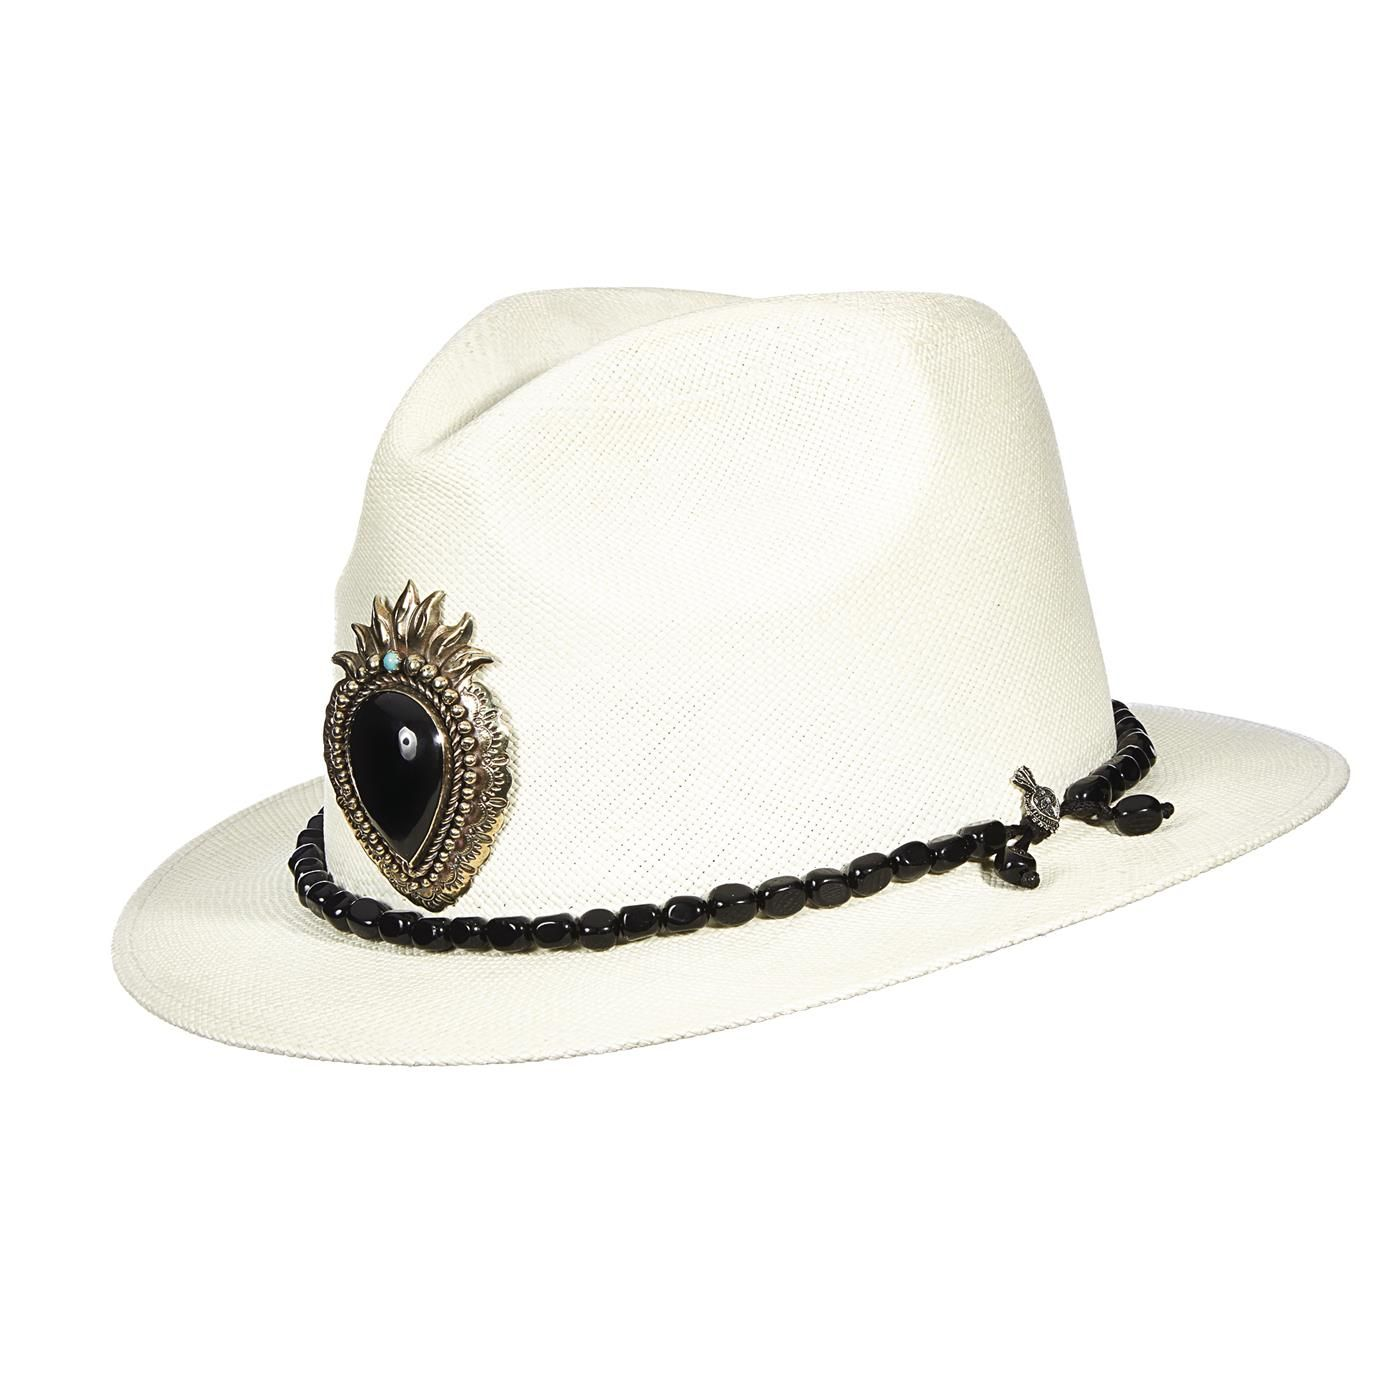 5865cc2b73249 This special edition panama hat is worn by Carlos Santana himself. The hat  has a